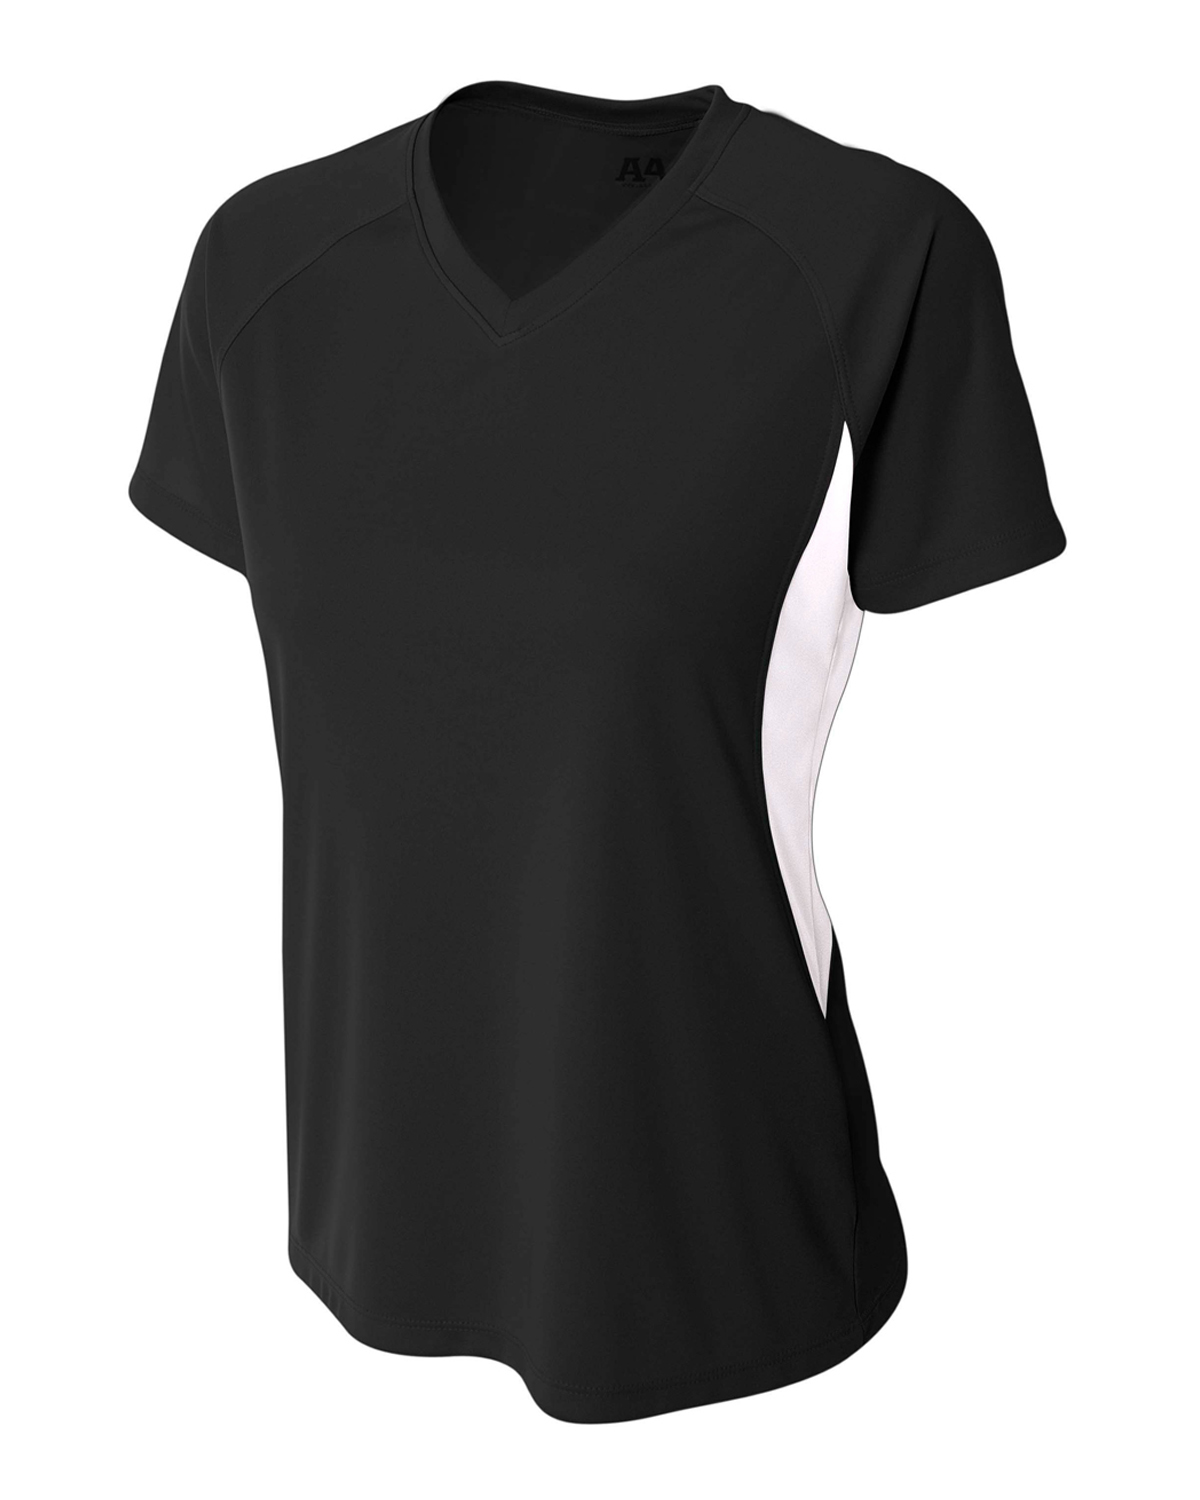 A4 Drop Ship NW3223 - Ladies' Color Block Performance V-Neck Shirt